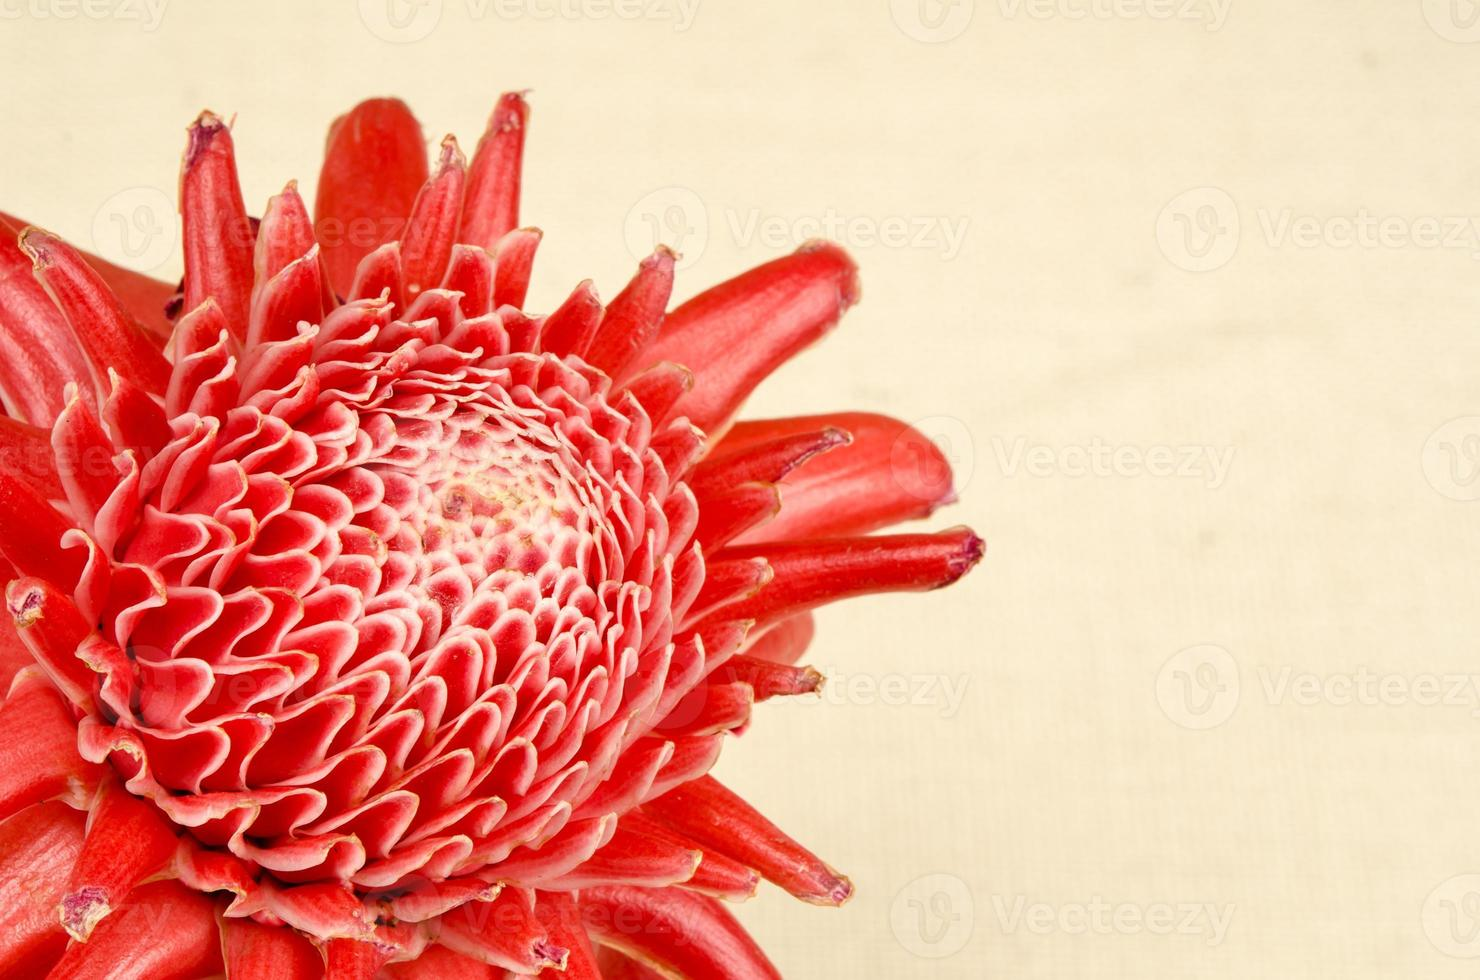 Torch ginger photo